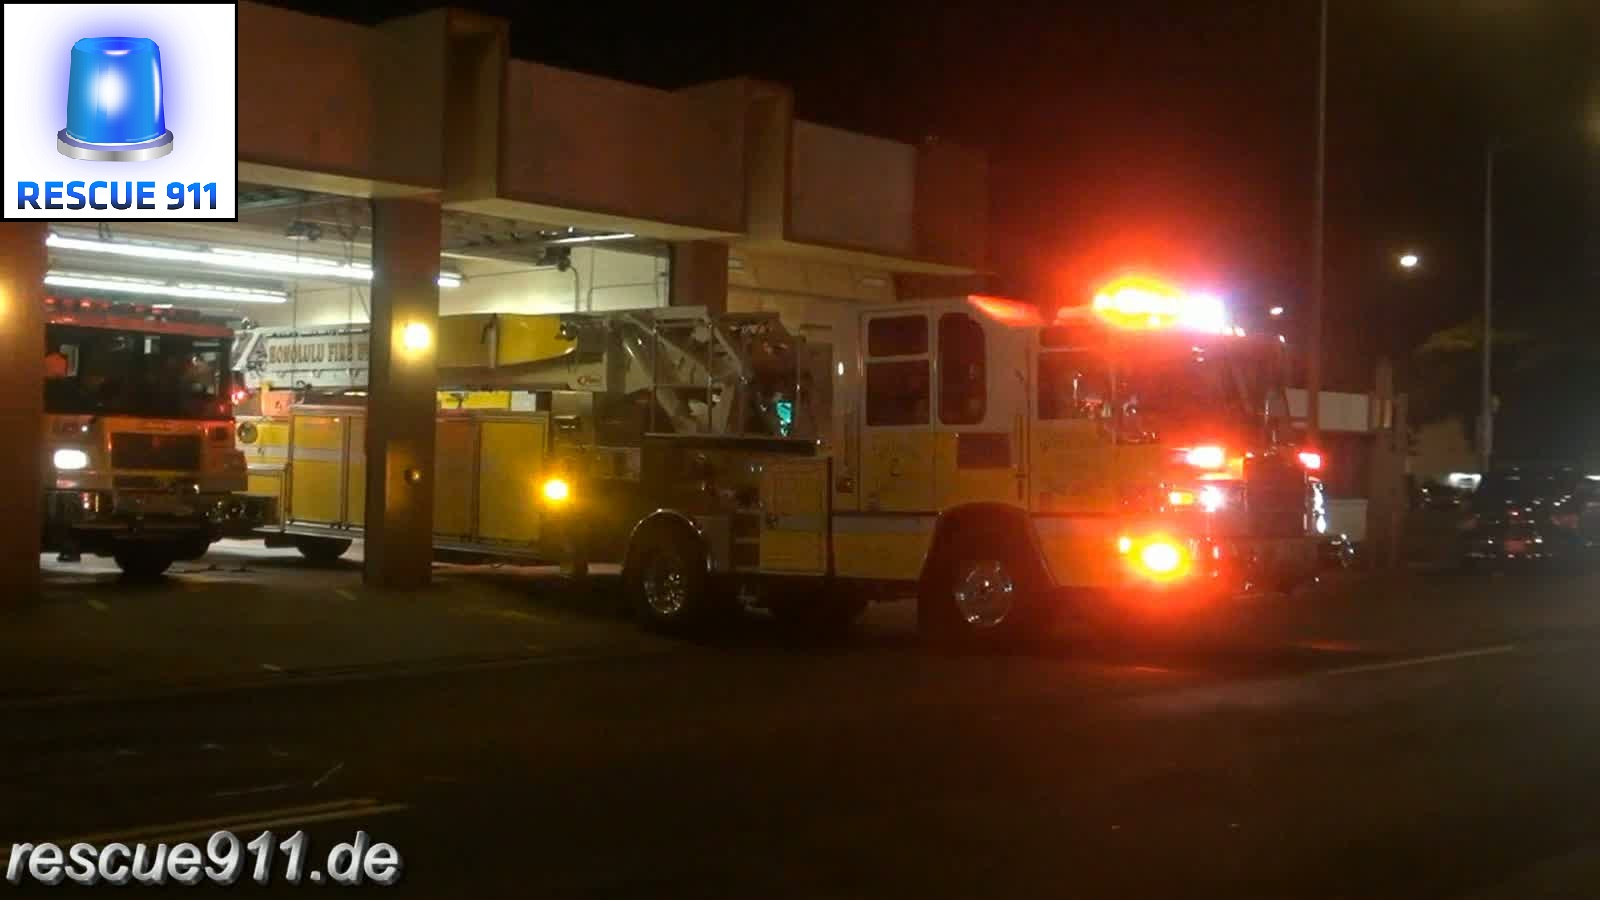 Ladder 2 + Engine 2 + Ambulance Honolulu Fire Department (stream)